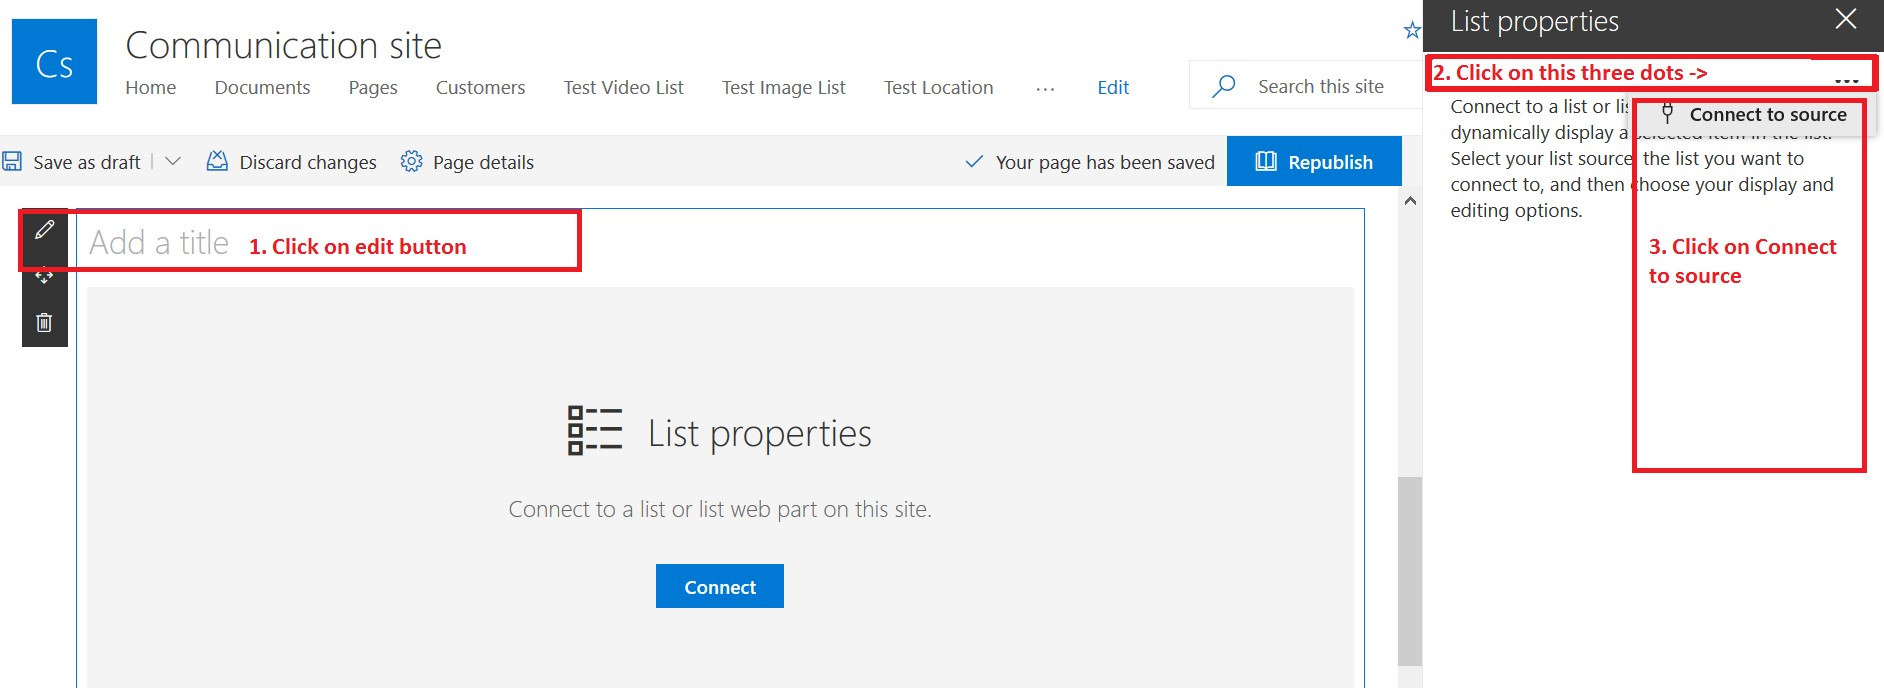 Connect to source in list view web part - SharePoint Online